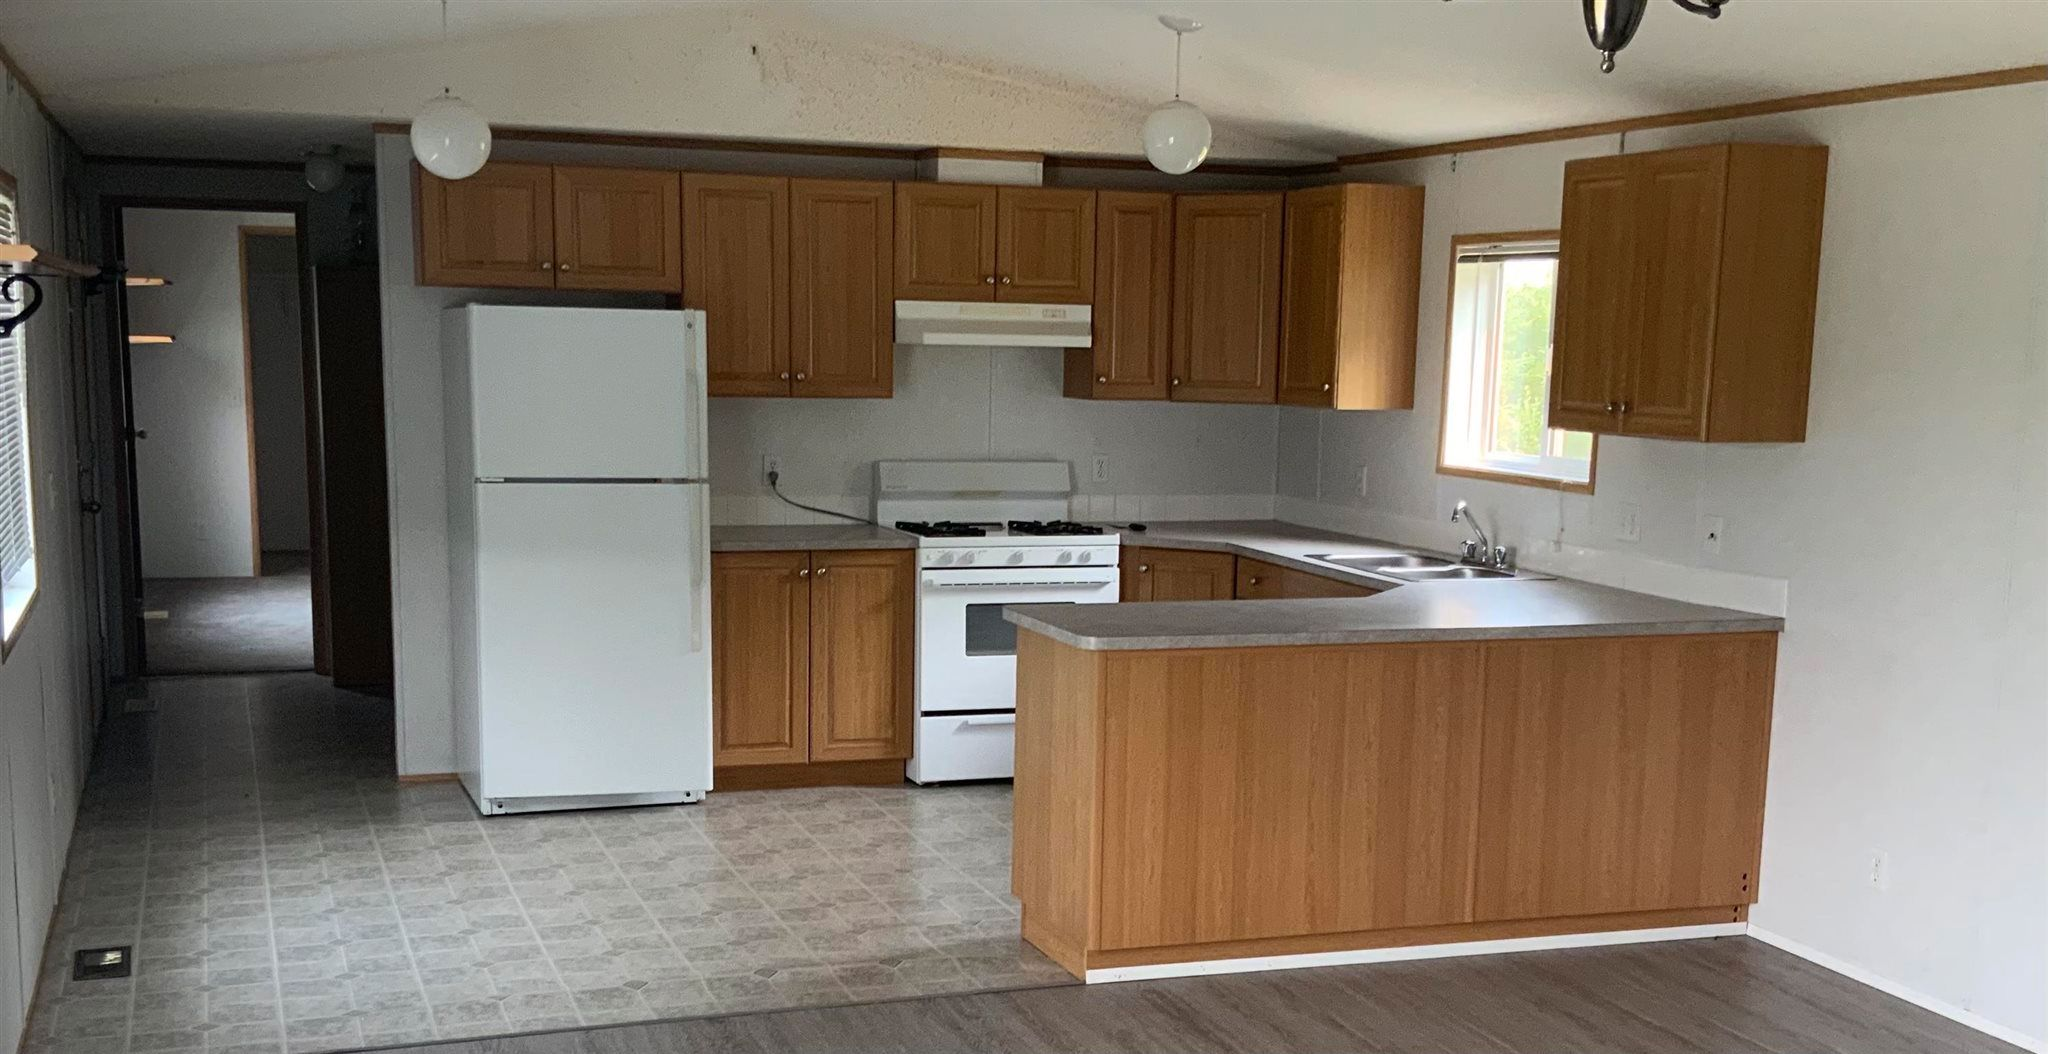 """Photo 5: Photos: 1206 GARCIA Road in Fort St. John: Fort St. John - Rural E 100th Manufactured Home for sale in """"GARCIA ROAD"""" (Fort St. John (Zone 60))  : MLS®# R2597287"""